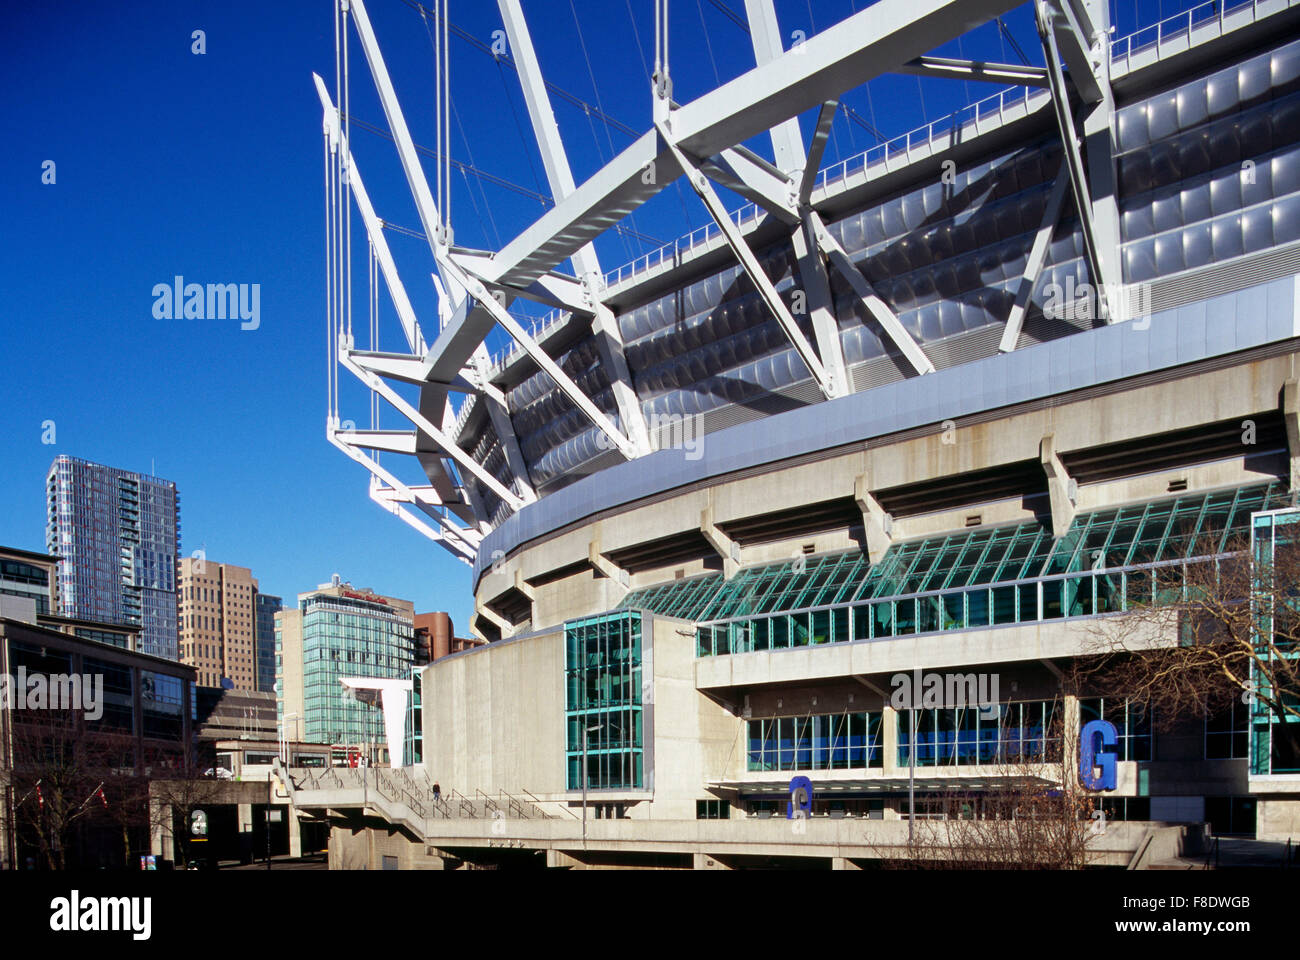 BC Place Stadium, Vancouver, BC, British Columbia, Canada - New Retractable Roof on Sports Arena - Stock Image